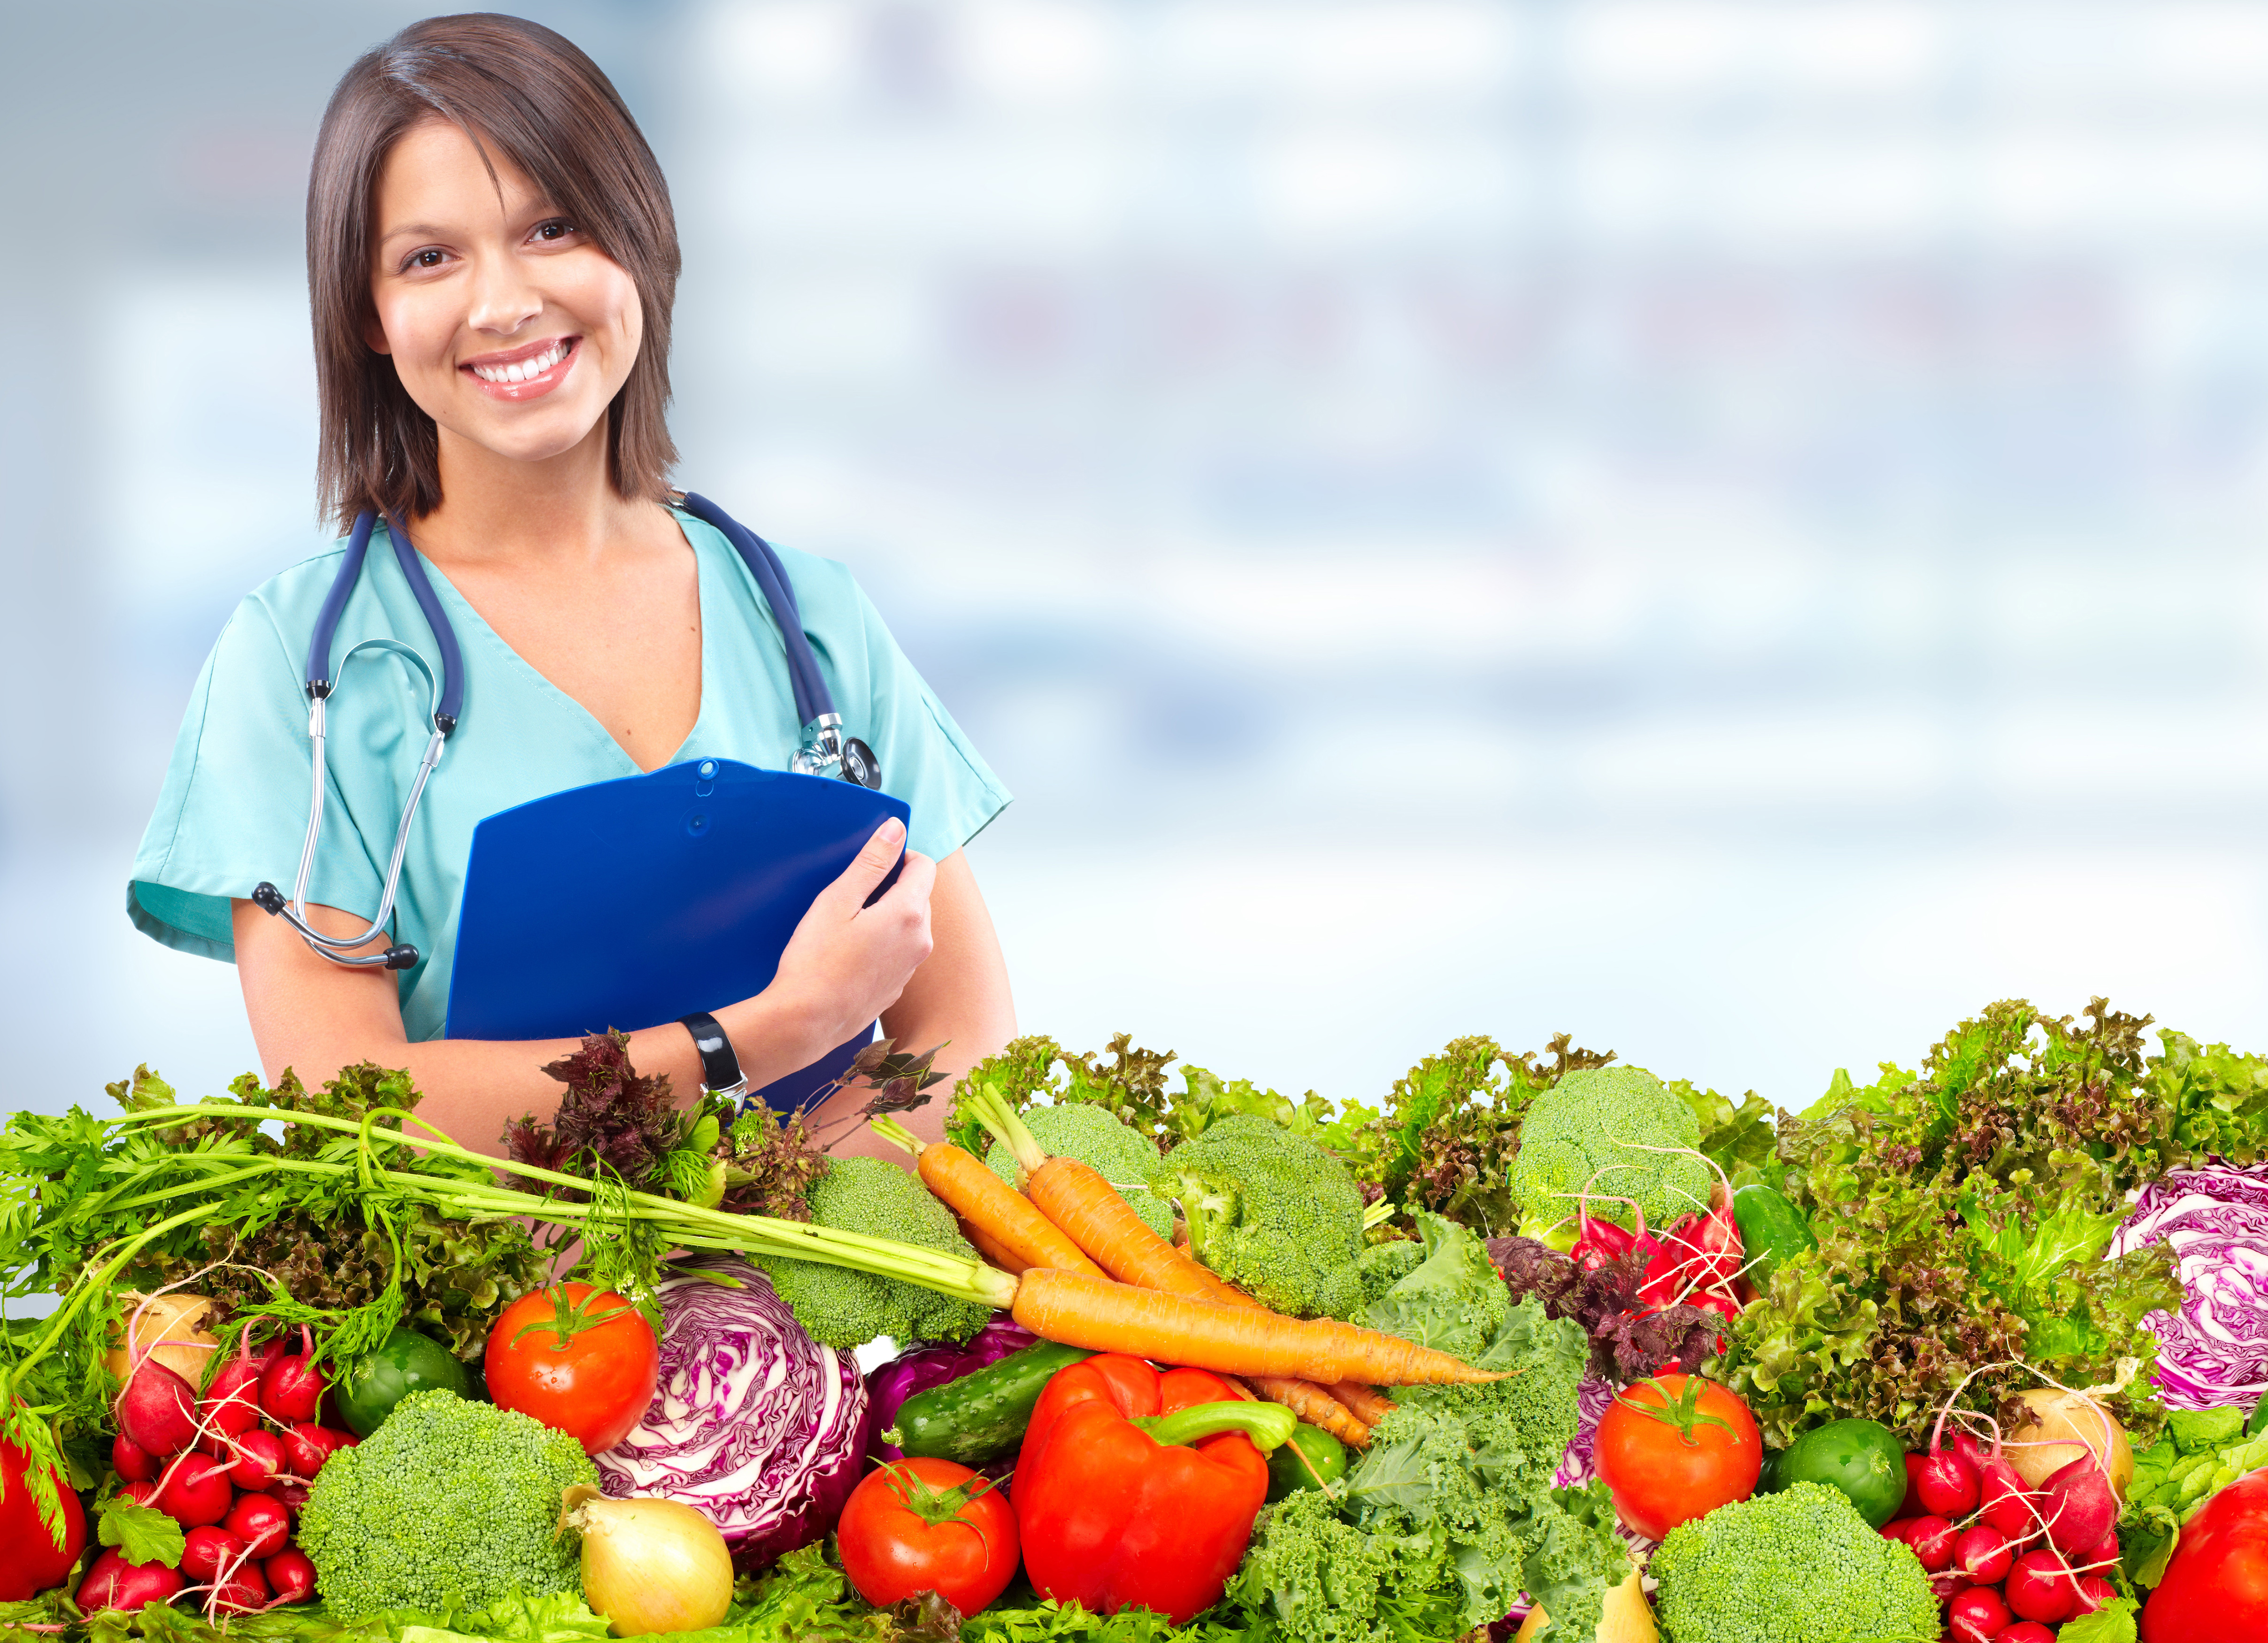 Weight Loss And Body Contouring Needs Nutritional Counseling